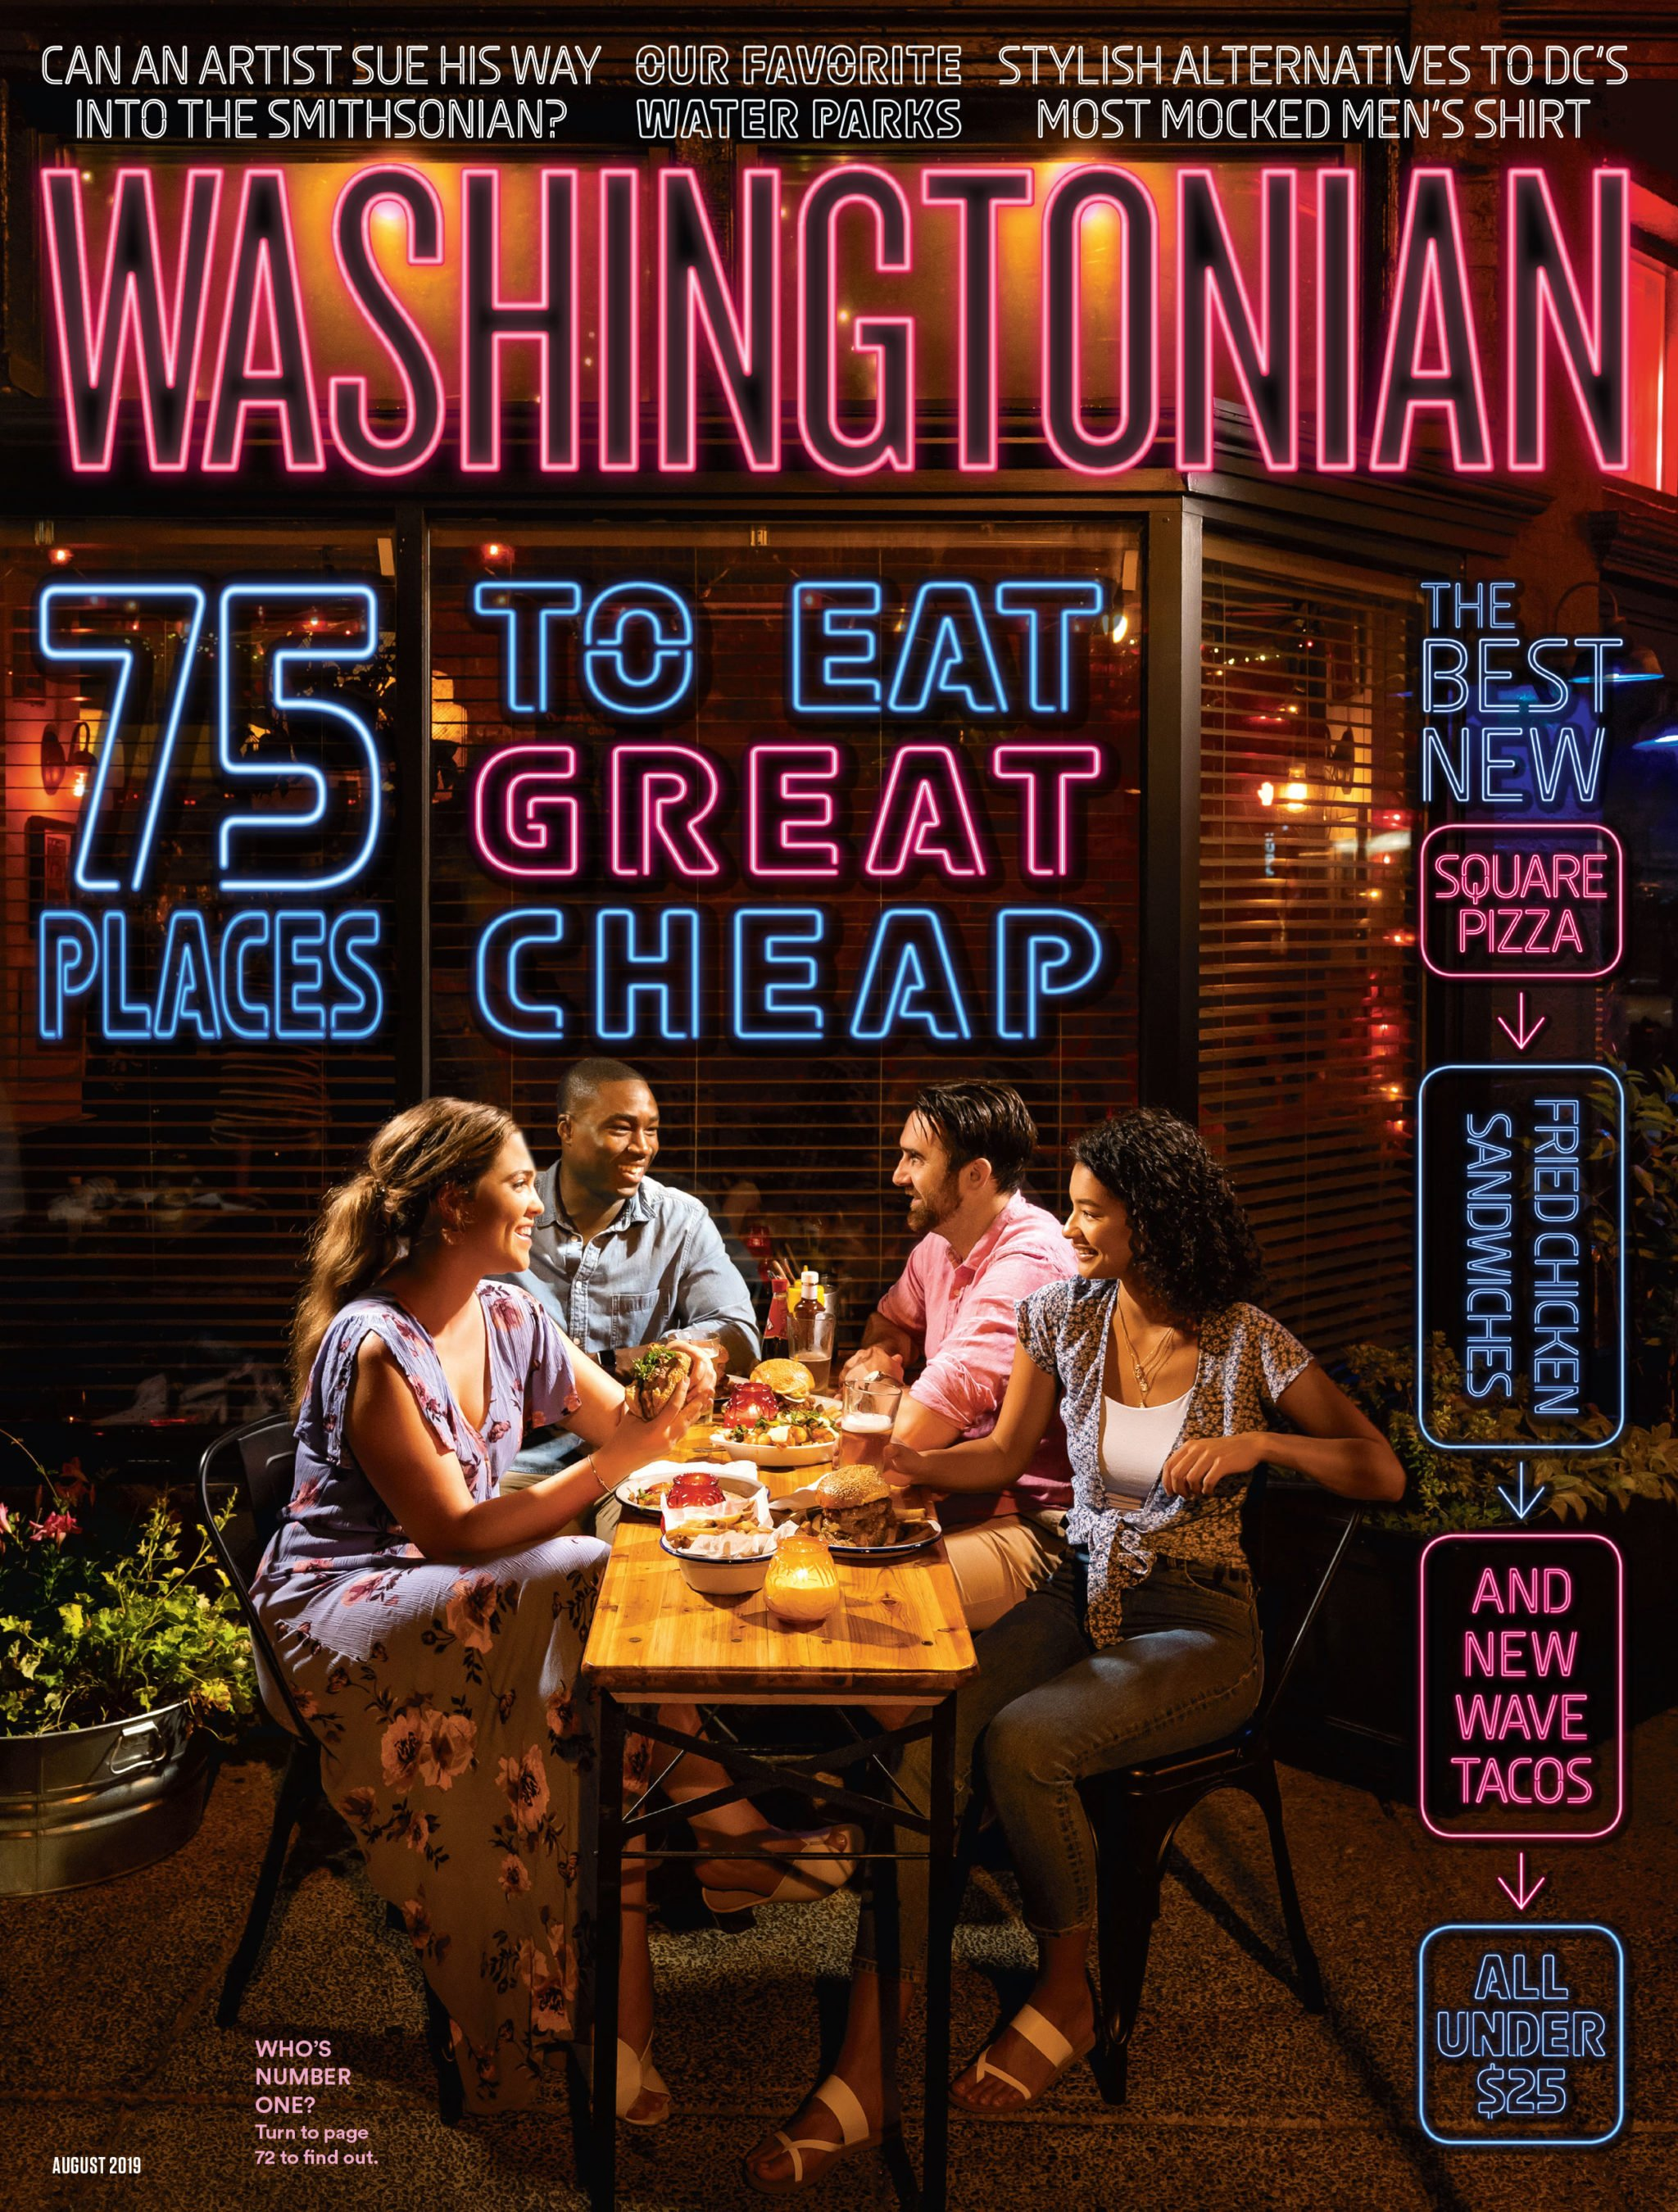 August 2019 75 Places To Eat Great Cheap Washingtonian Dc